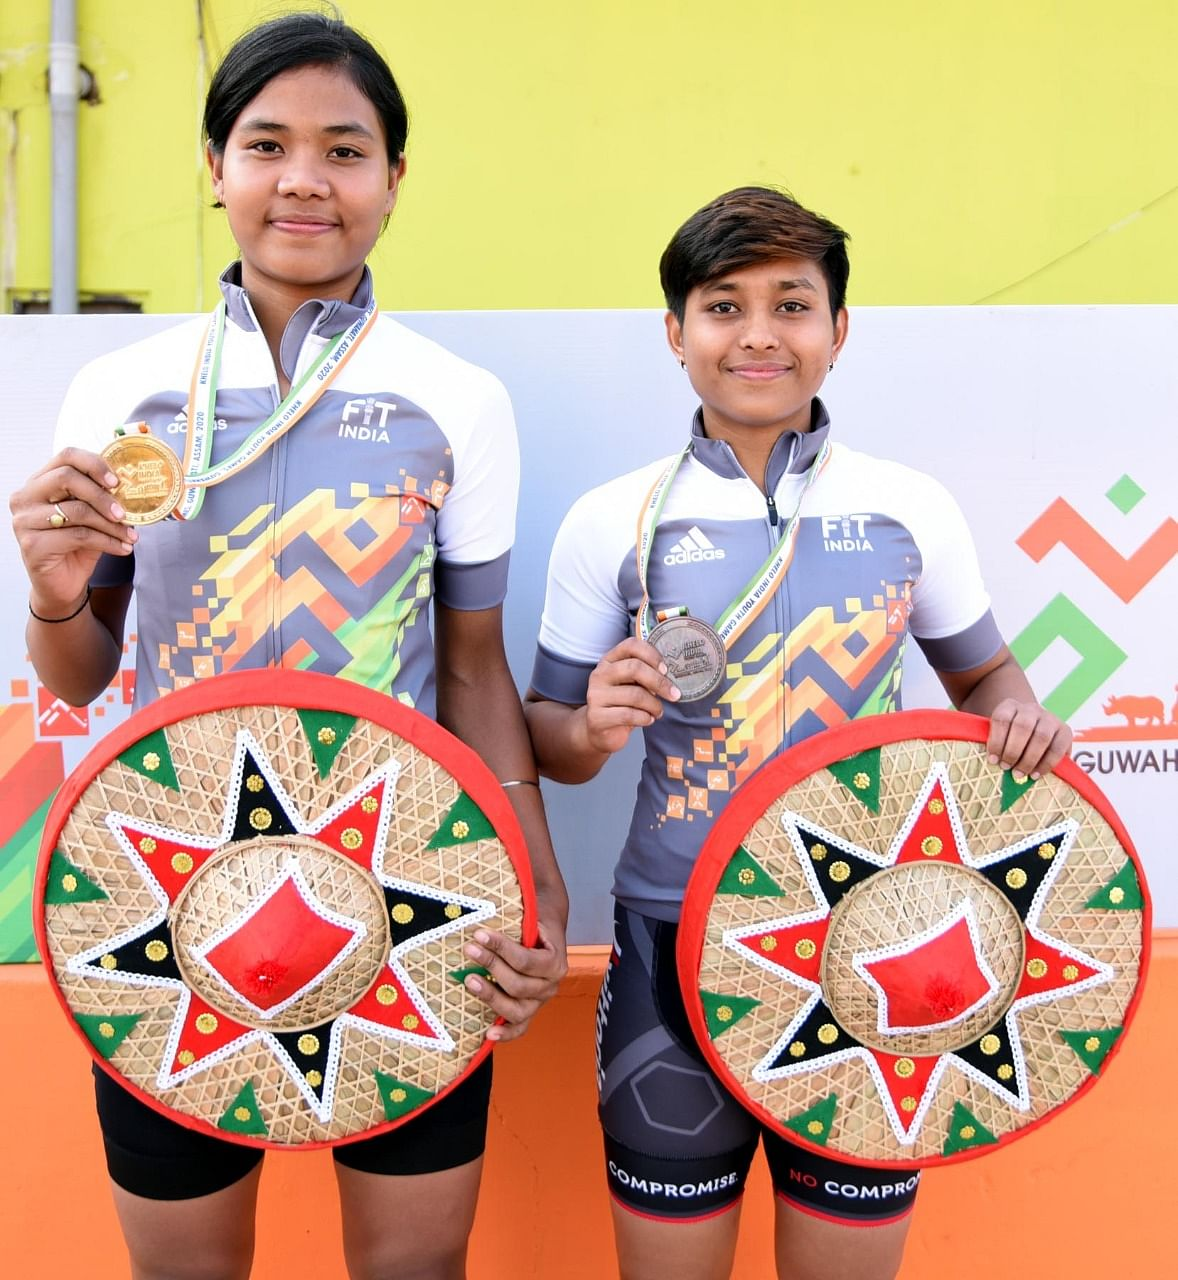 Assam's Gongutri Bordoloi and Chayanika Gogoi displaying their gold and bronze medals, respectively, in the girls' U-21 100-km cycling event at the ongoing 3rd Khelo India Youth Games 2020